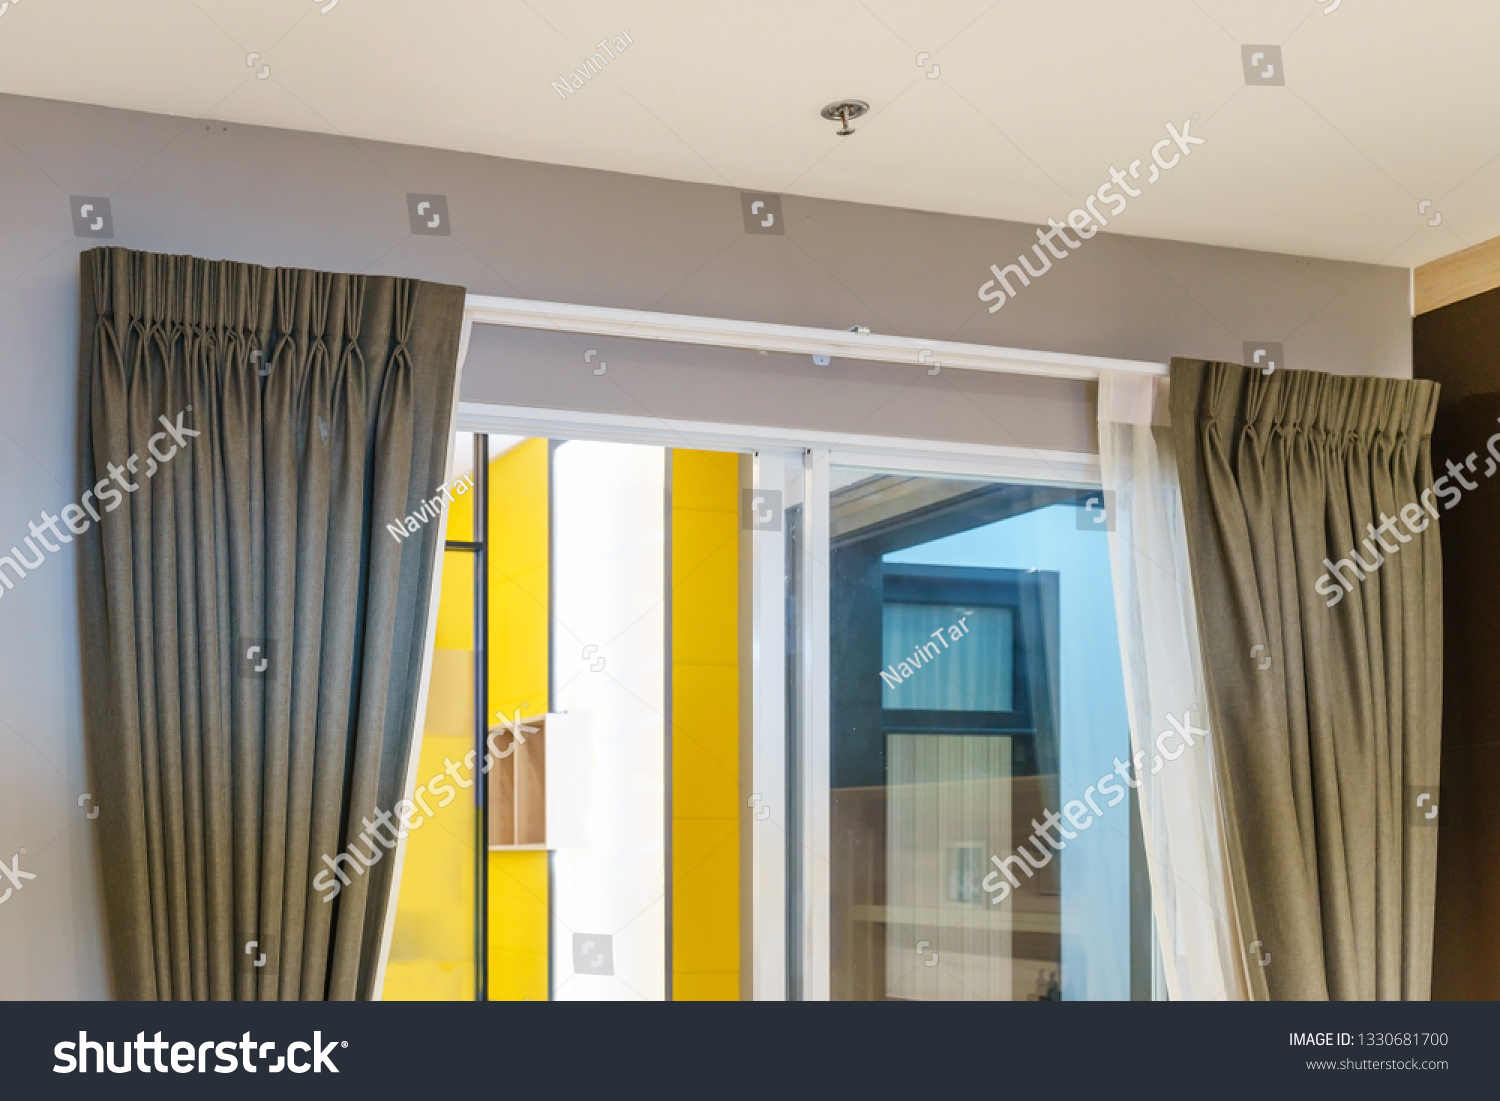 Beautiful Curtains Ringtop Rail Curtain Interior Buildings Landmarks Stock Image 1330681700